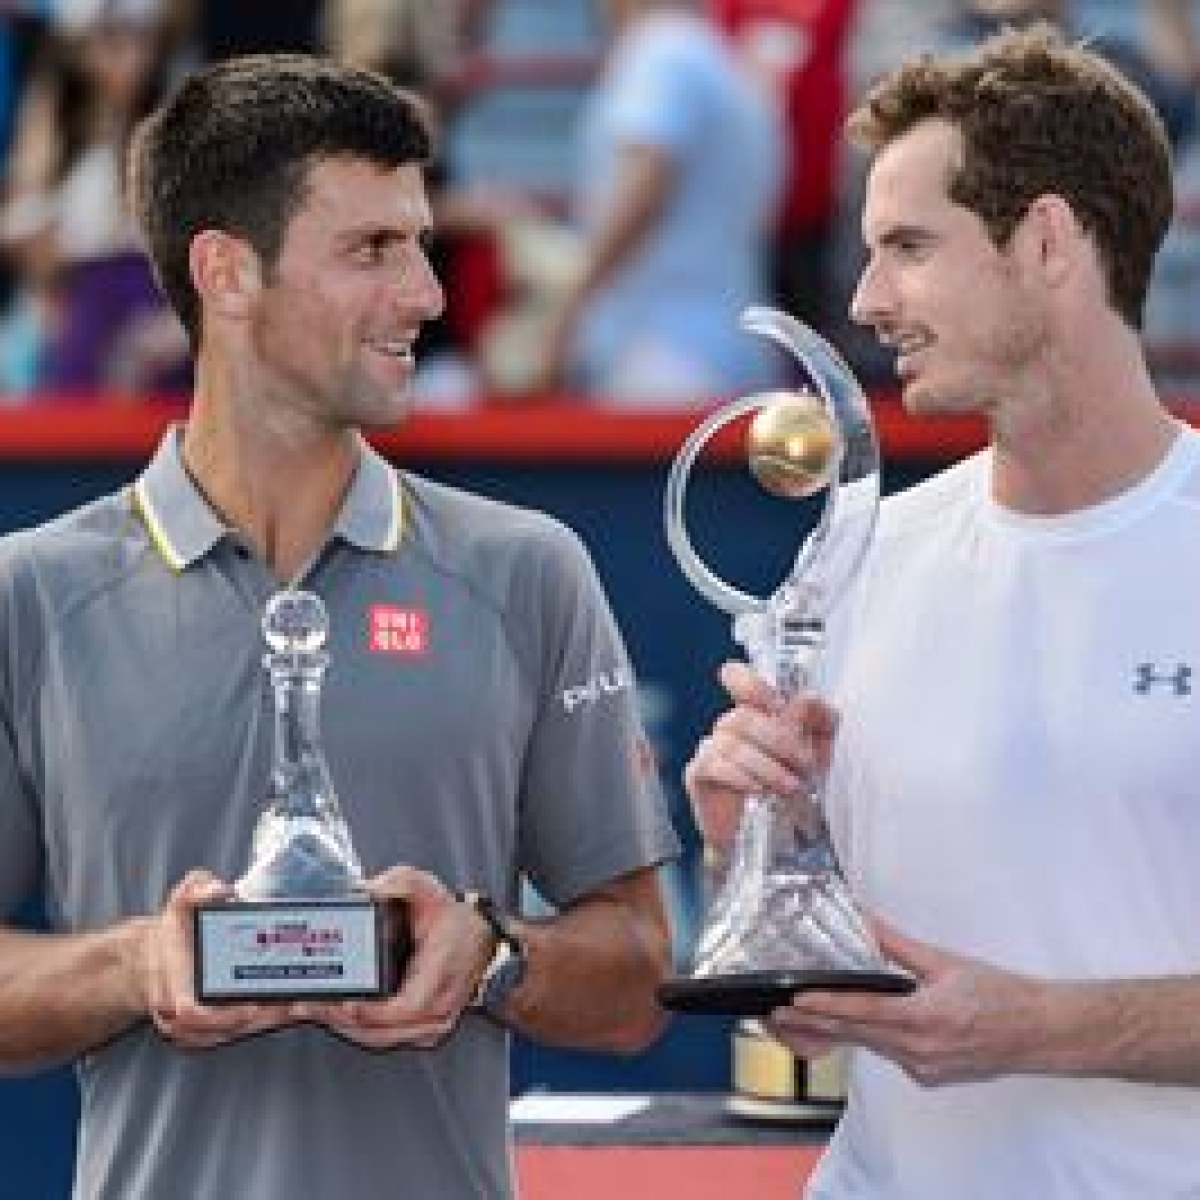 Ink, Shorts & GOAT: Novak Djokovic, Andy Murray put up a star-studded show